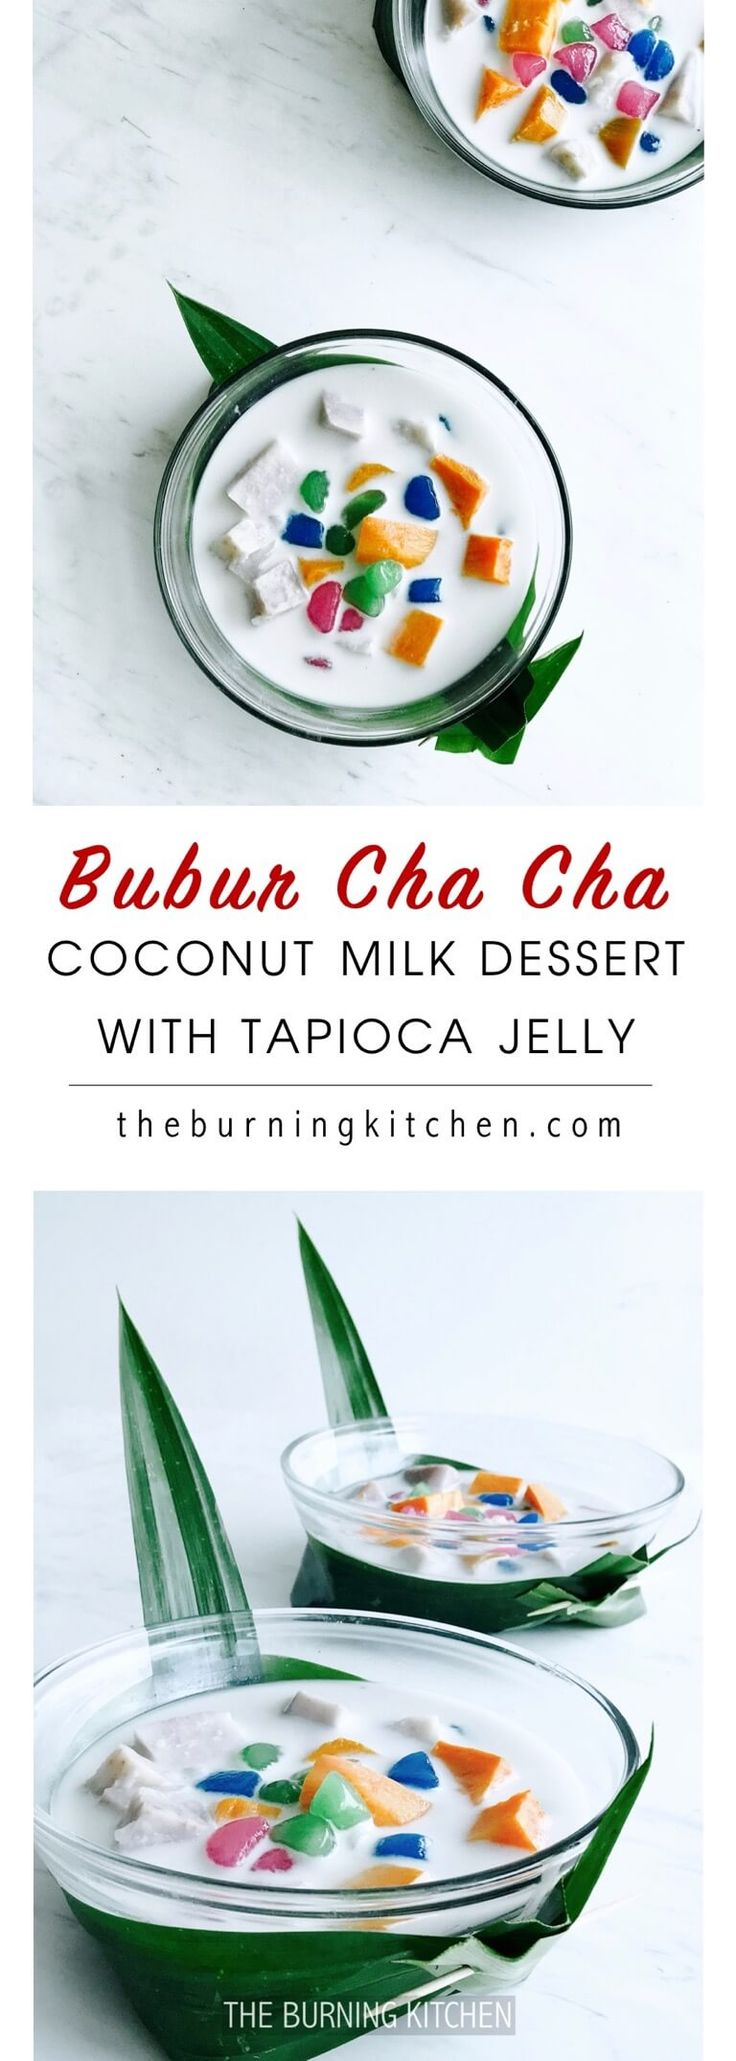 Bubur Cha Cha (bobo cha cha) – This popular Nyonya dessert boasts a delicious combination of steamed sweet potato and taro swimming in freshly-made coconut milk and topped with vibrantly-coloured translucent tapioca jelly cubes. Simply divine!